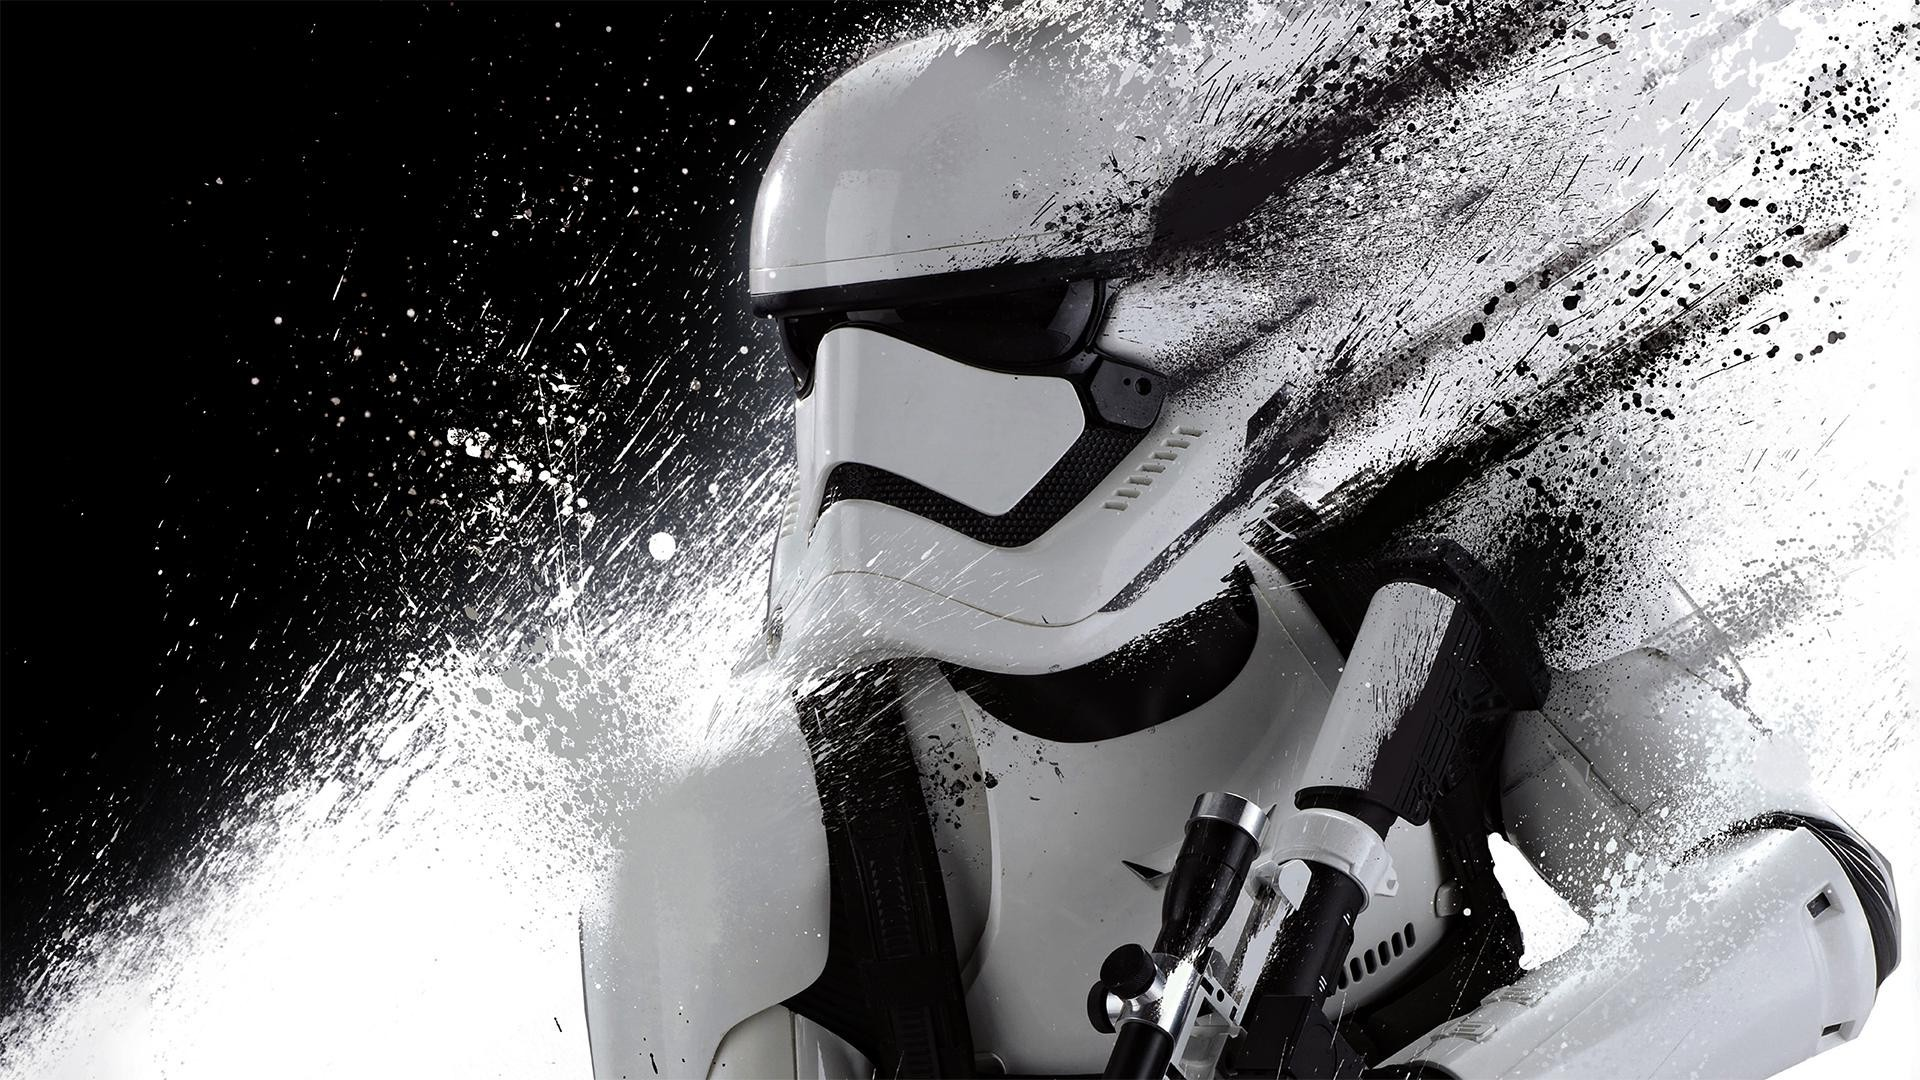 Darth Vader Stormtroopers Wallpapers   HD Wallpapers